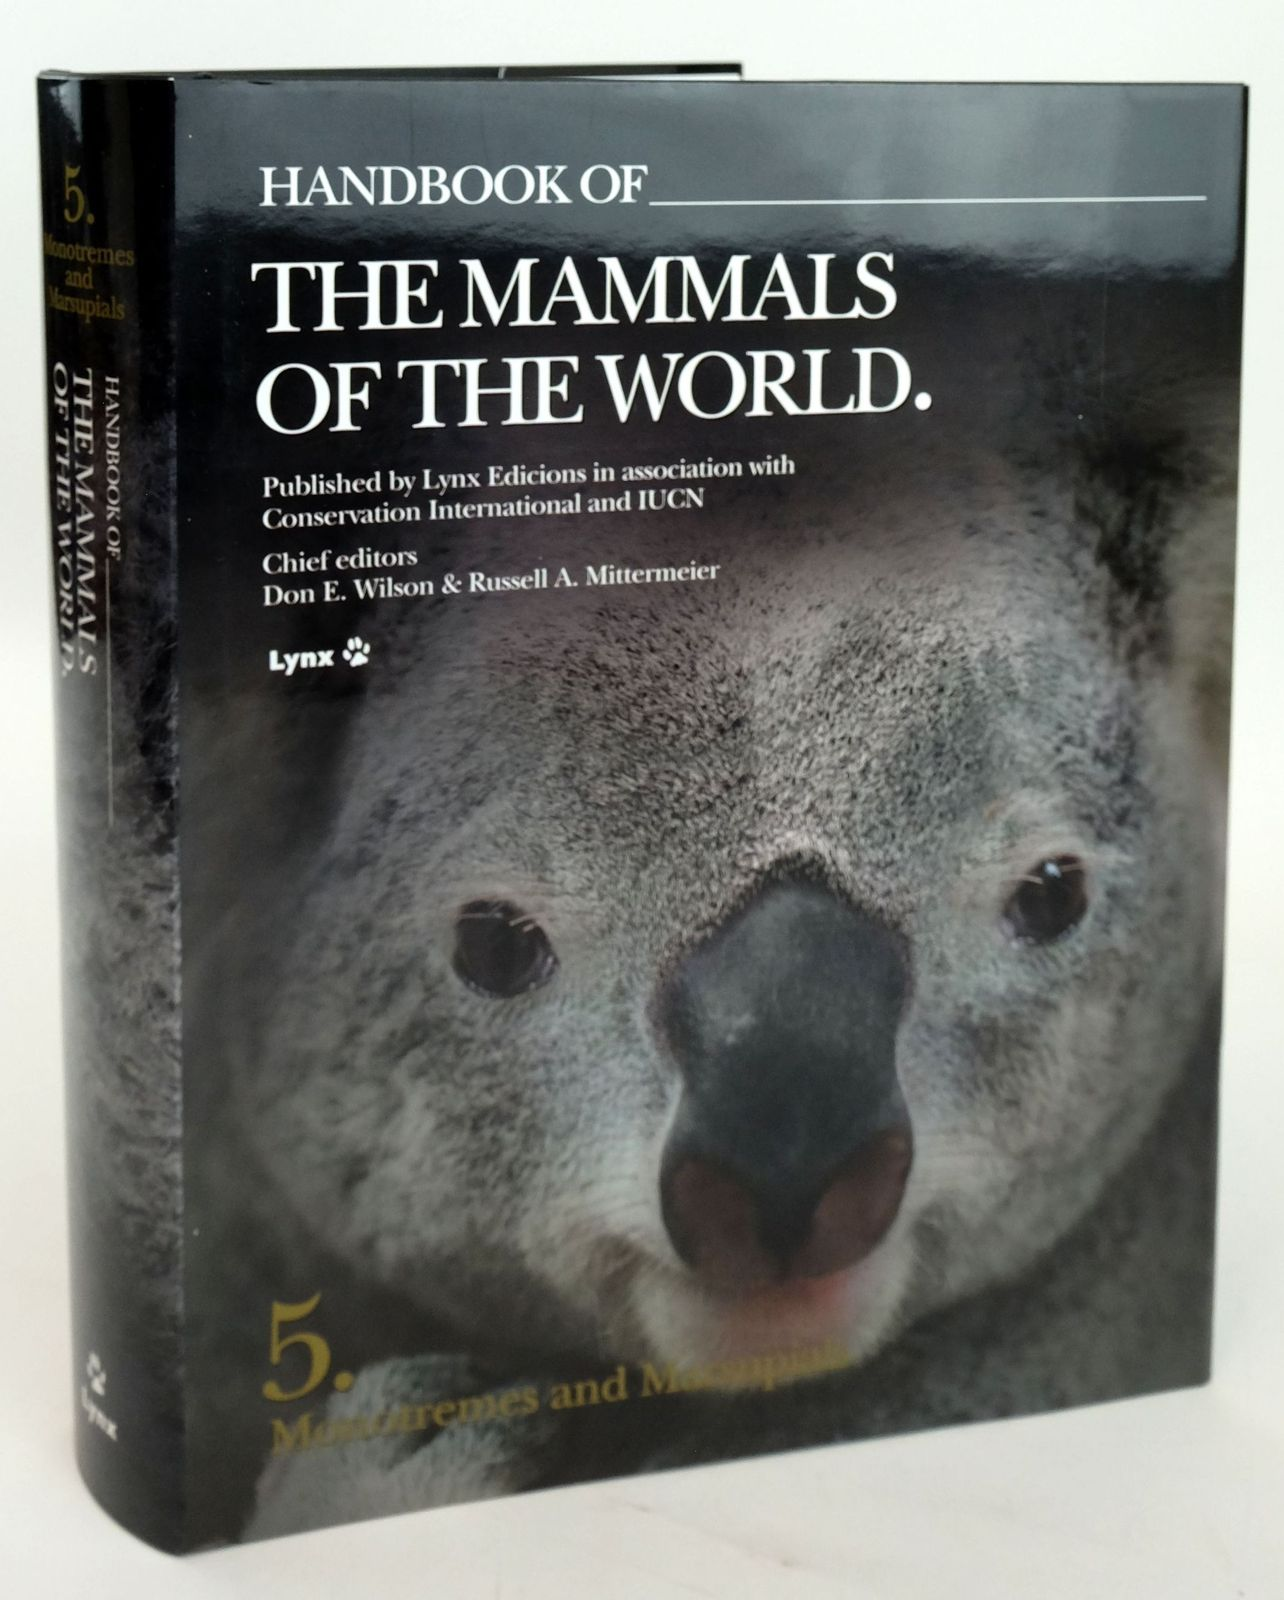 Photo of HANDBOOK OF THE MAMMALS OF THE WORLD 5. MONOTREMES AND MARSUPIALS- Stock Number: 1820161